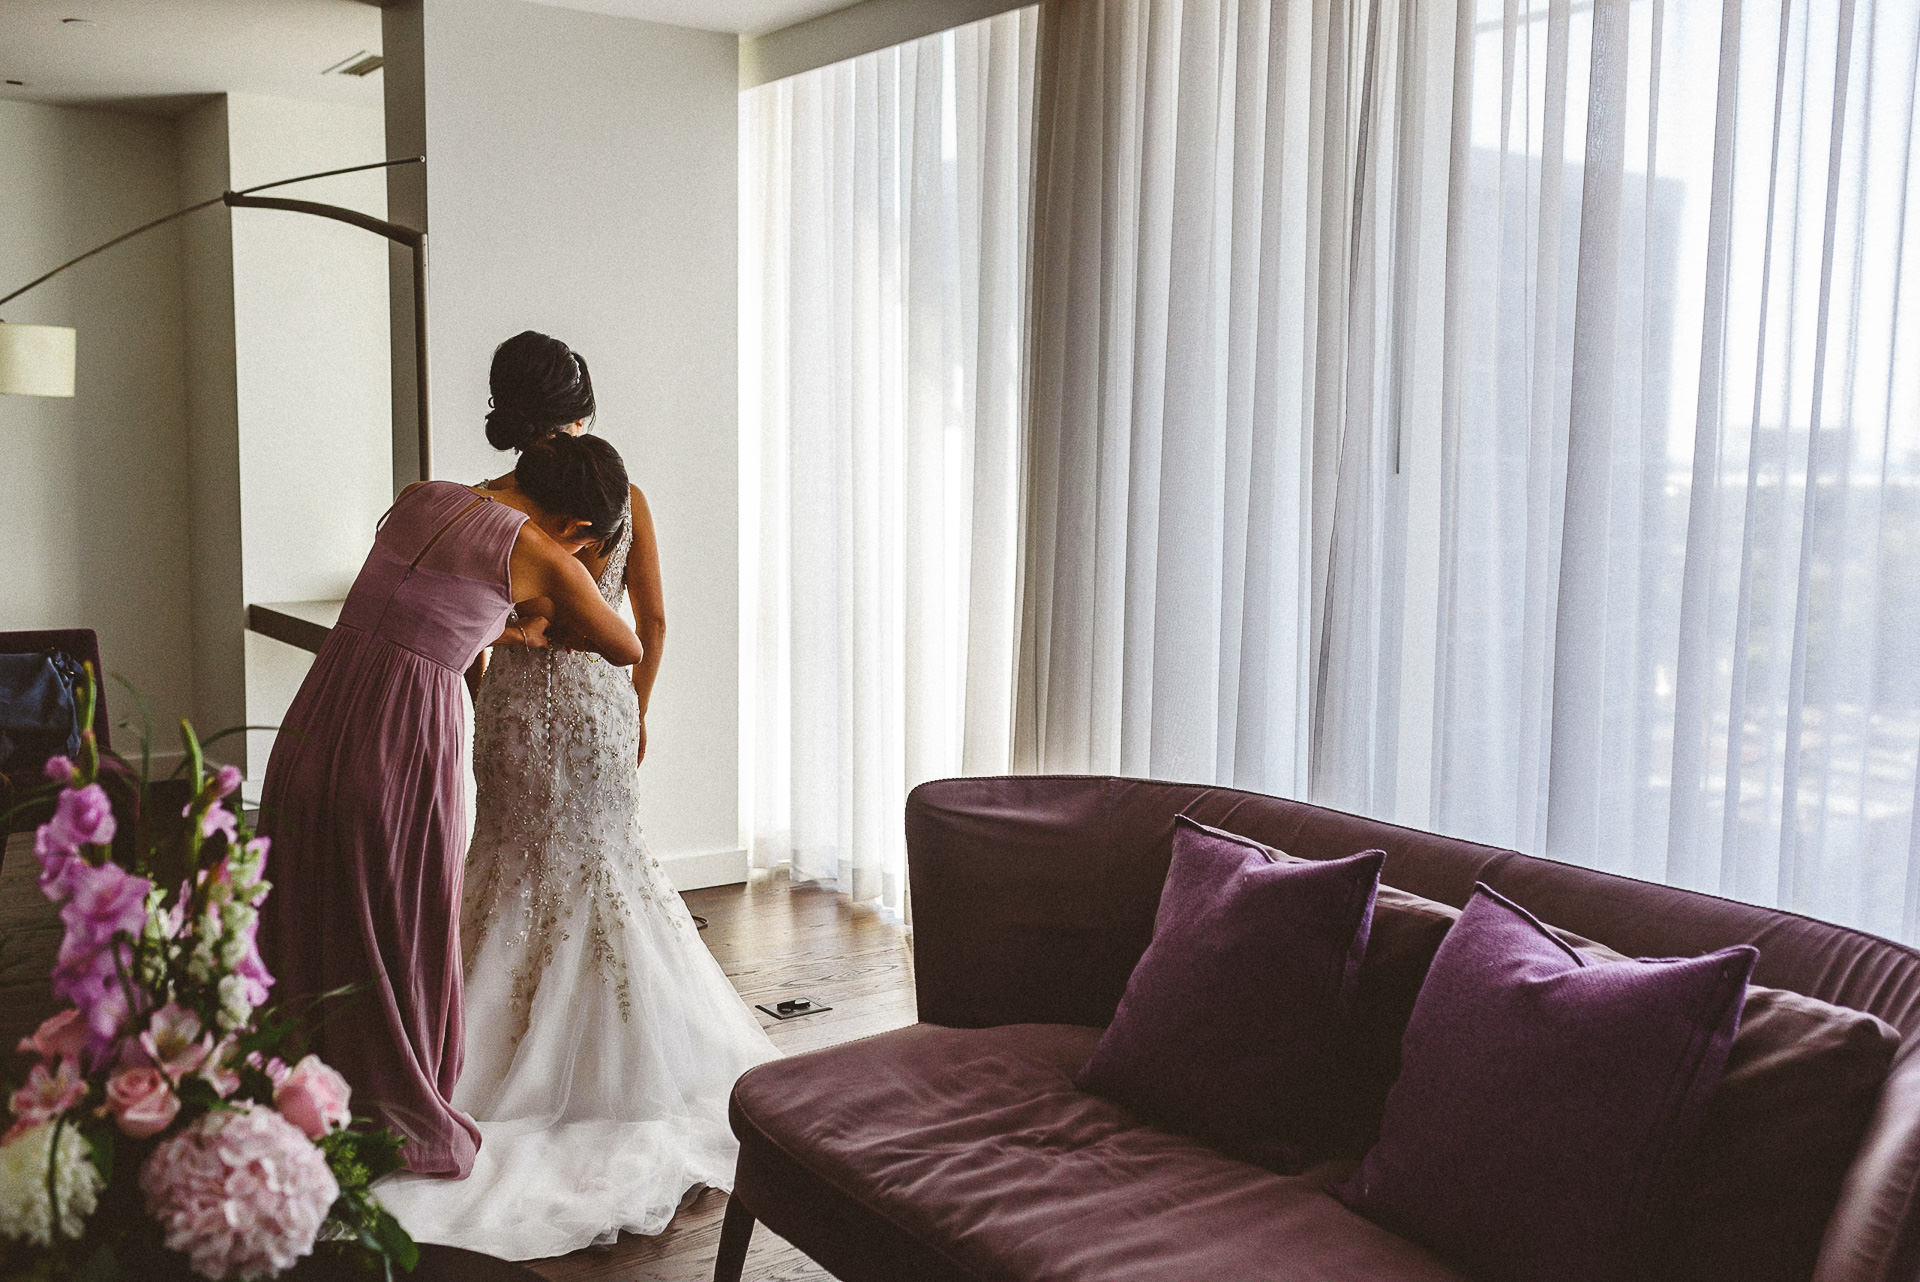 Bride getting help from bridesmaid with dress